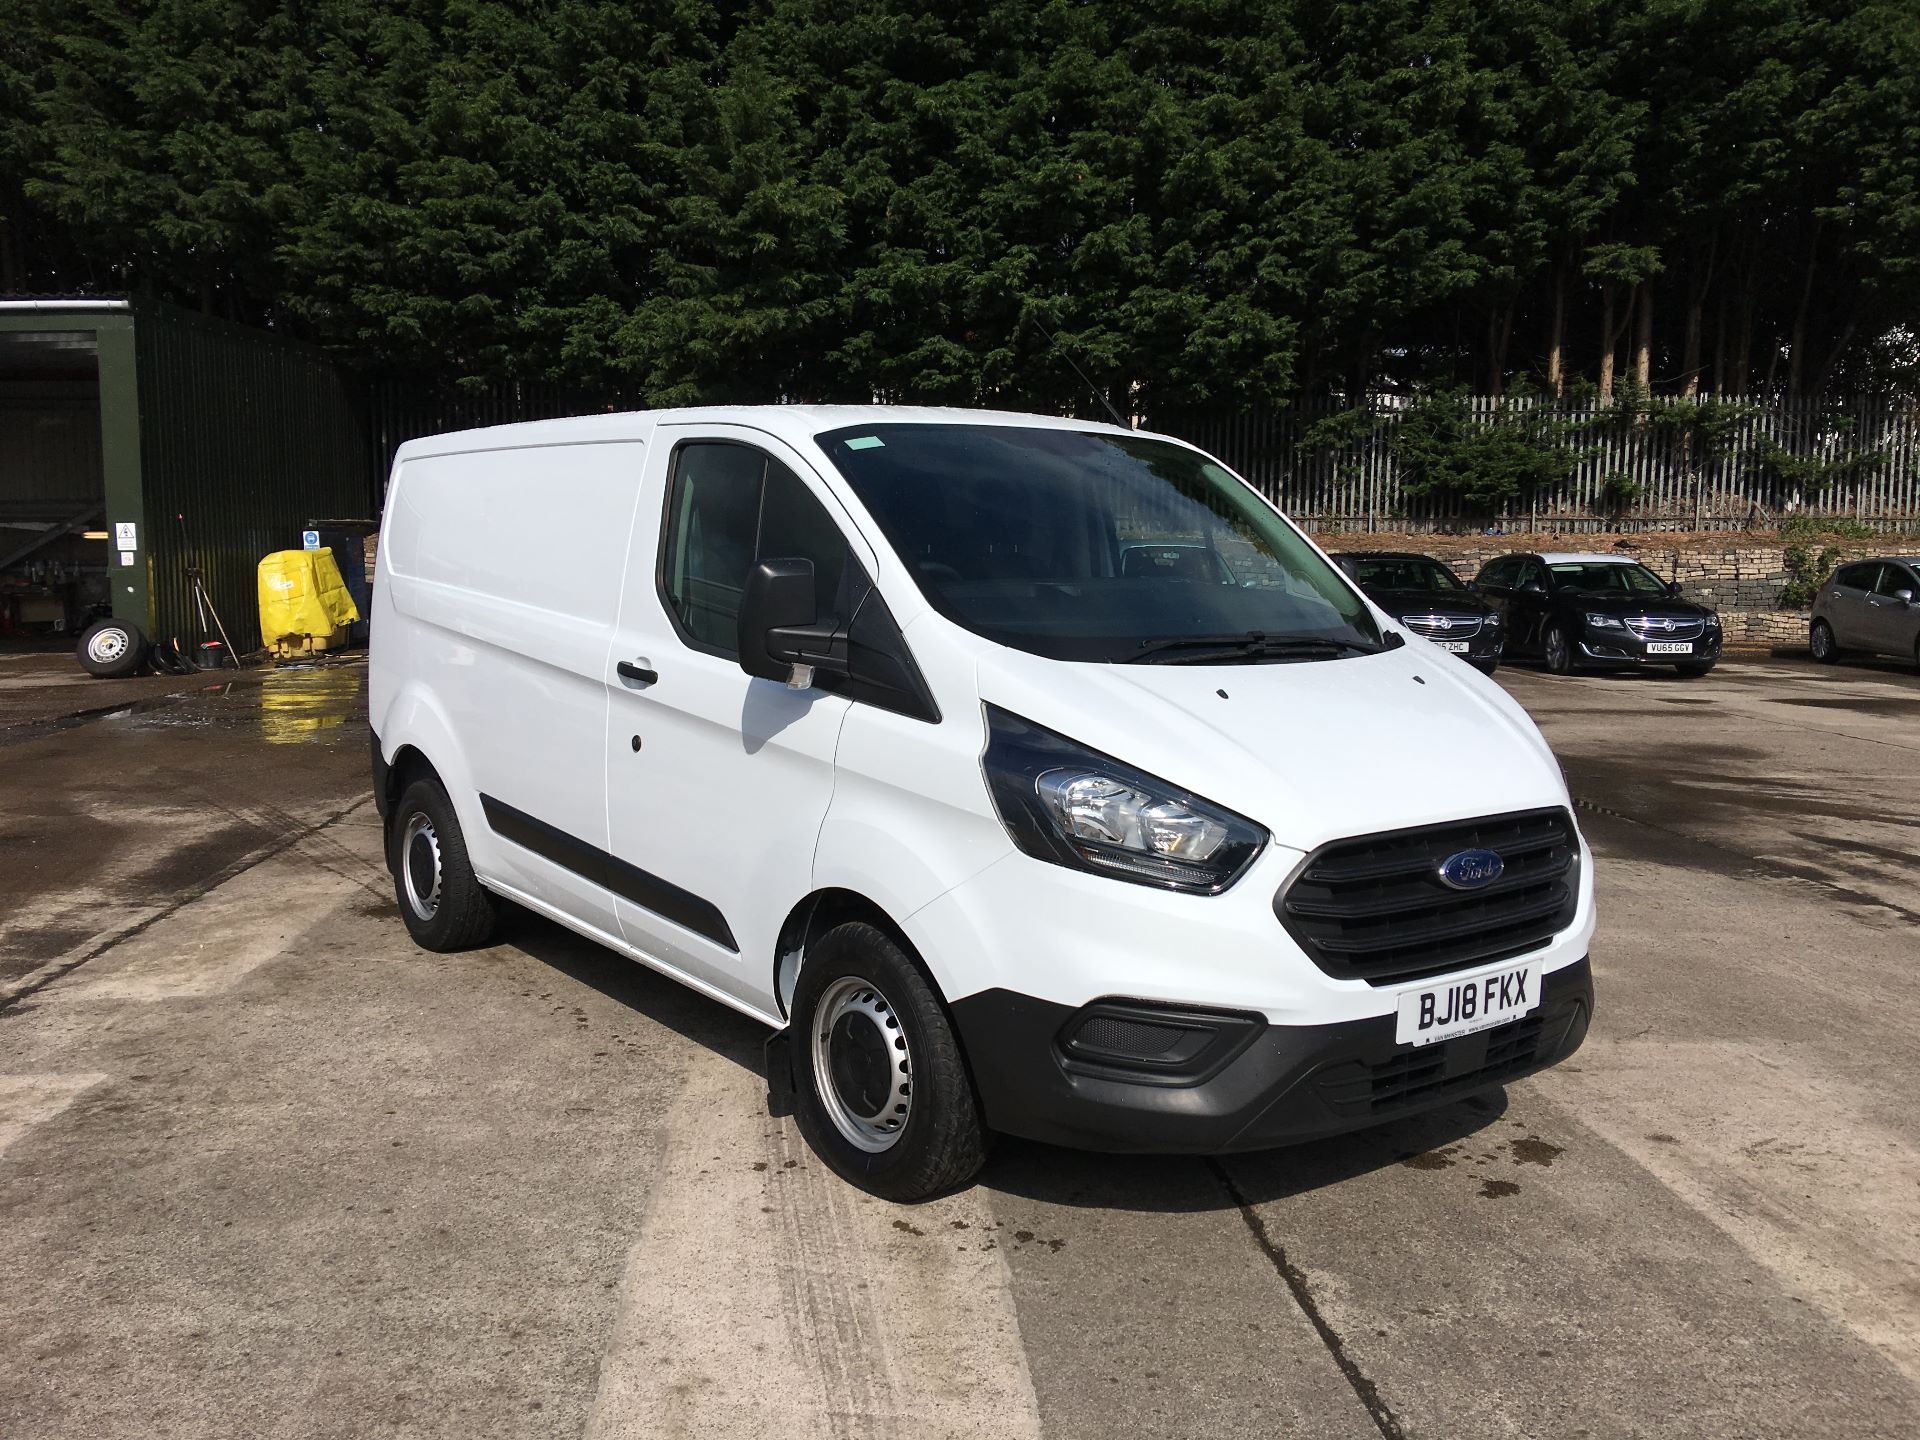 2018 Ford Transit Custom 300 L1 DIESEL FWD 2.0 TDCI 105PS LOW ROOF EURO 6 (BJ18FKX)